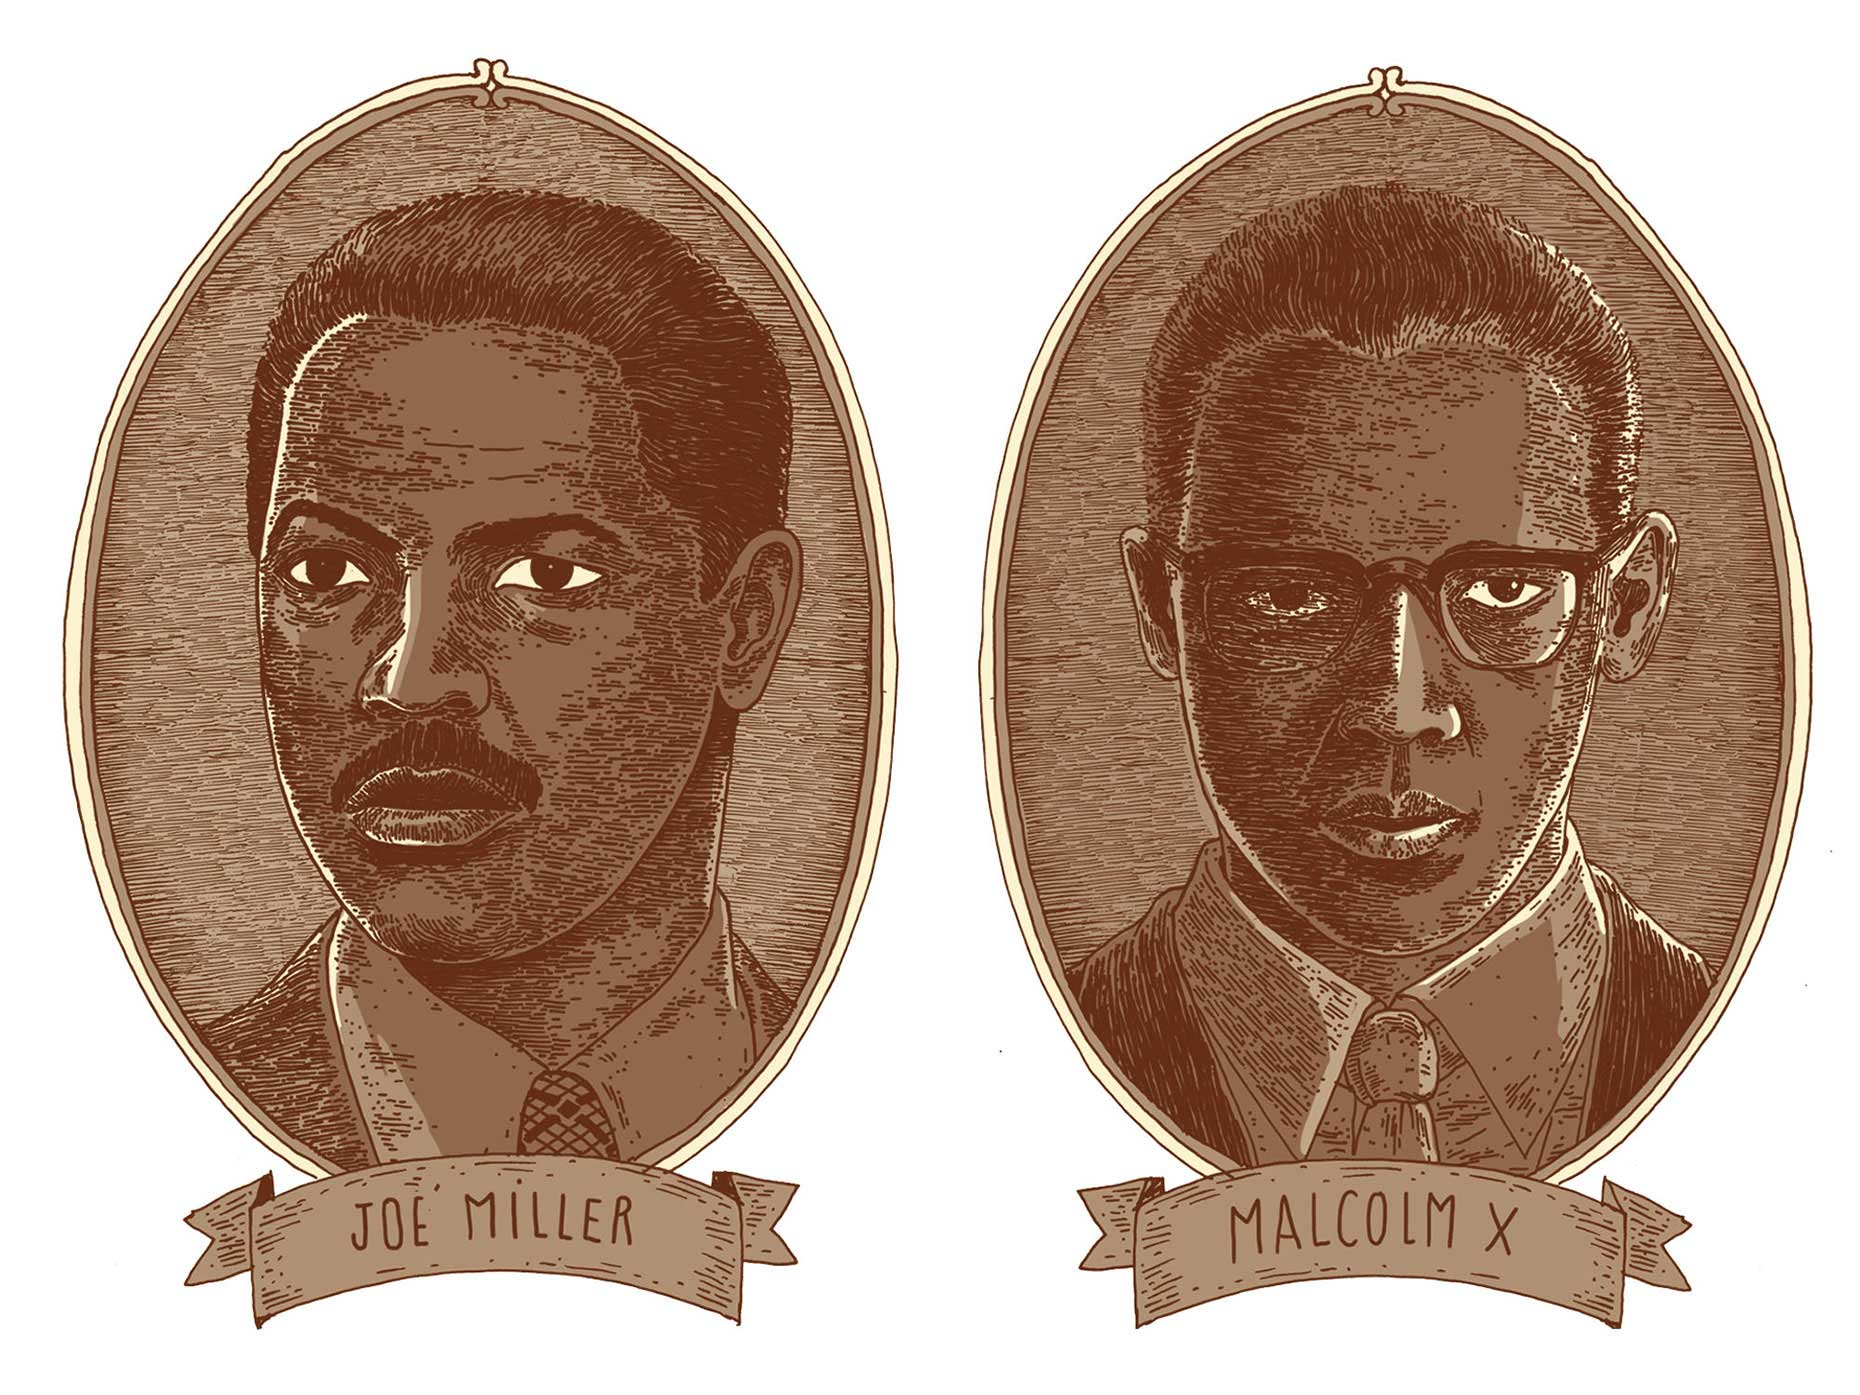 LWLies_Denzel-Washington2.jpg